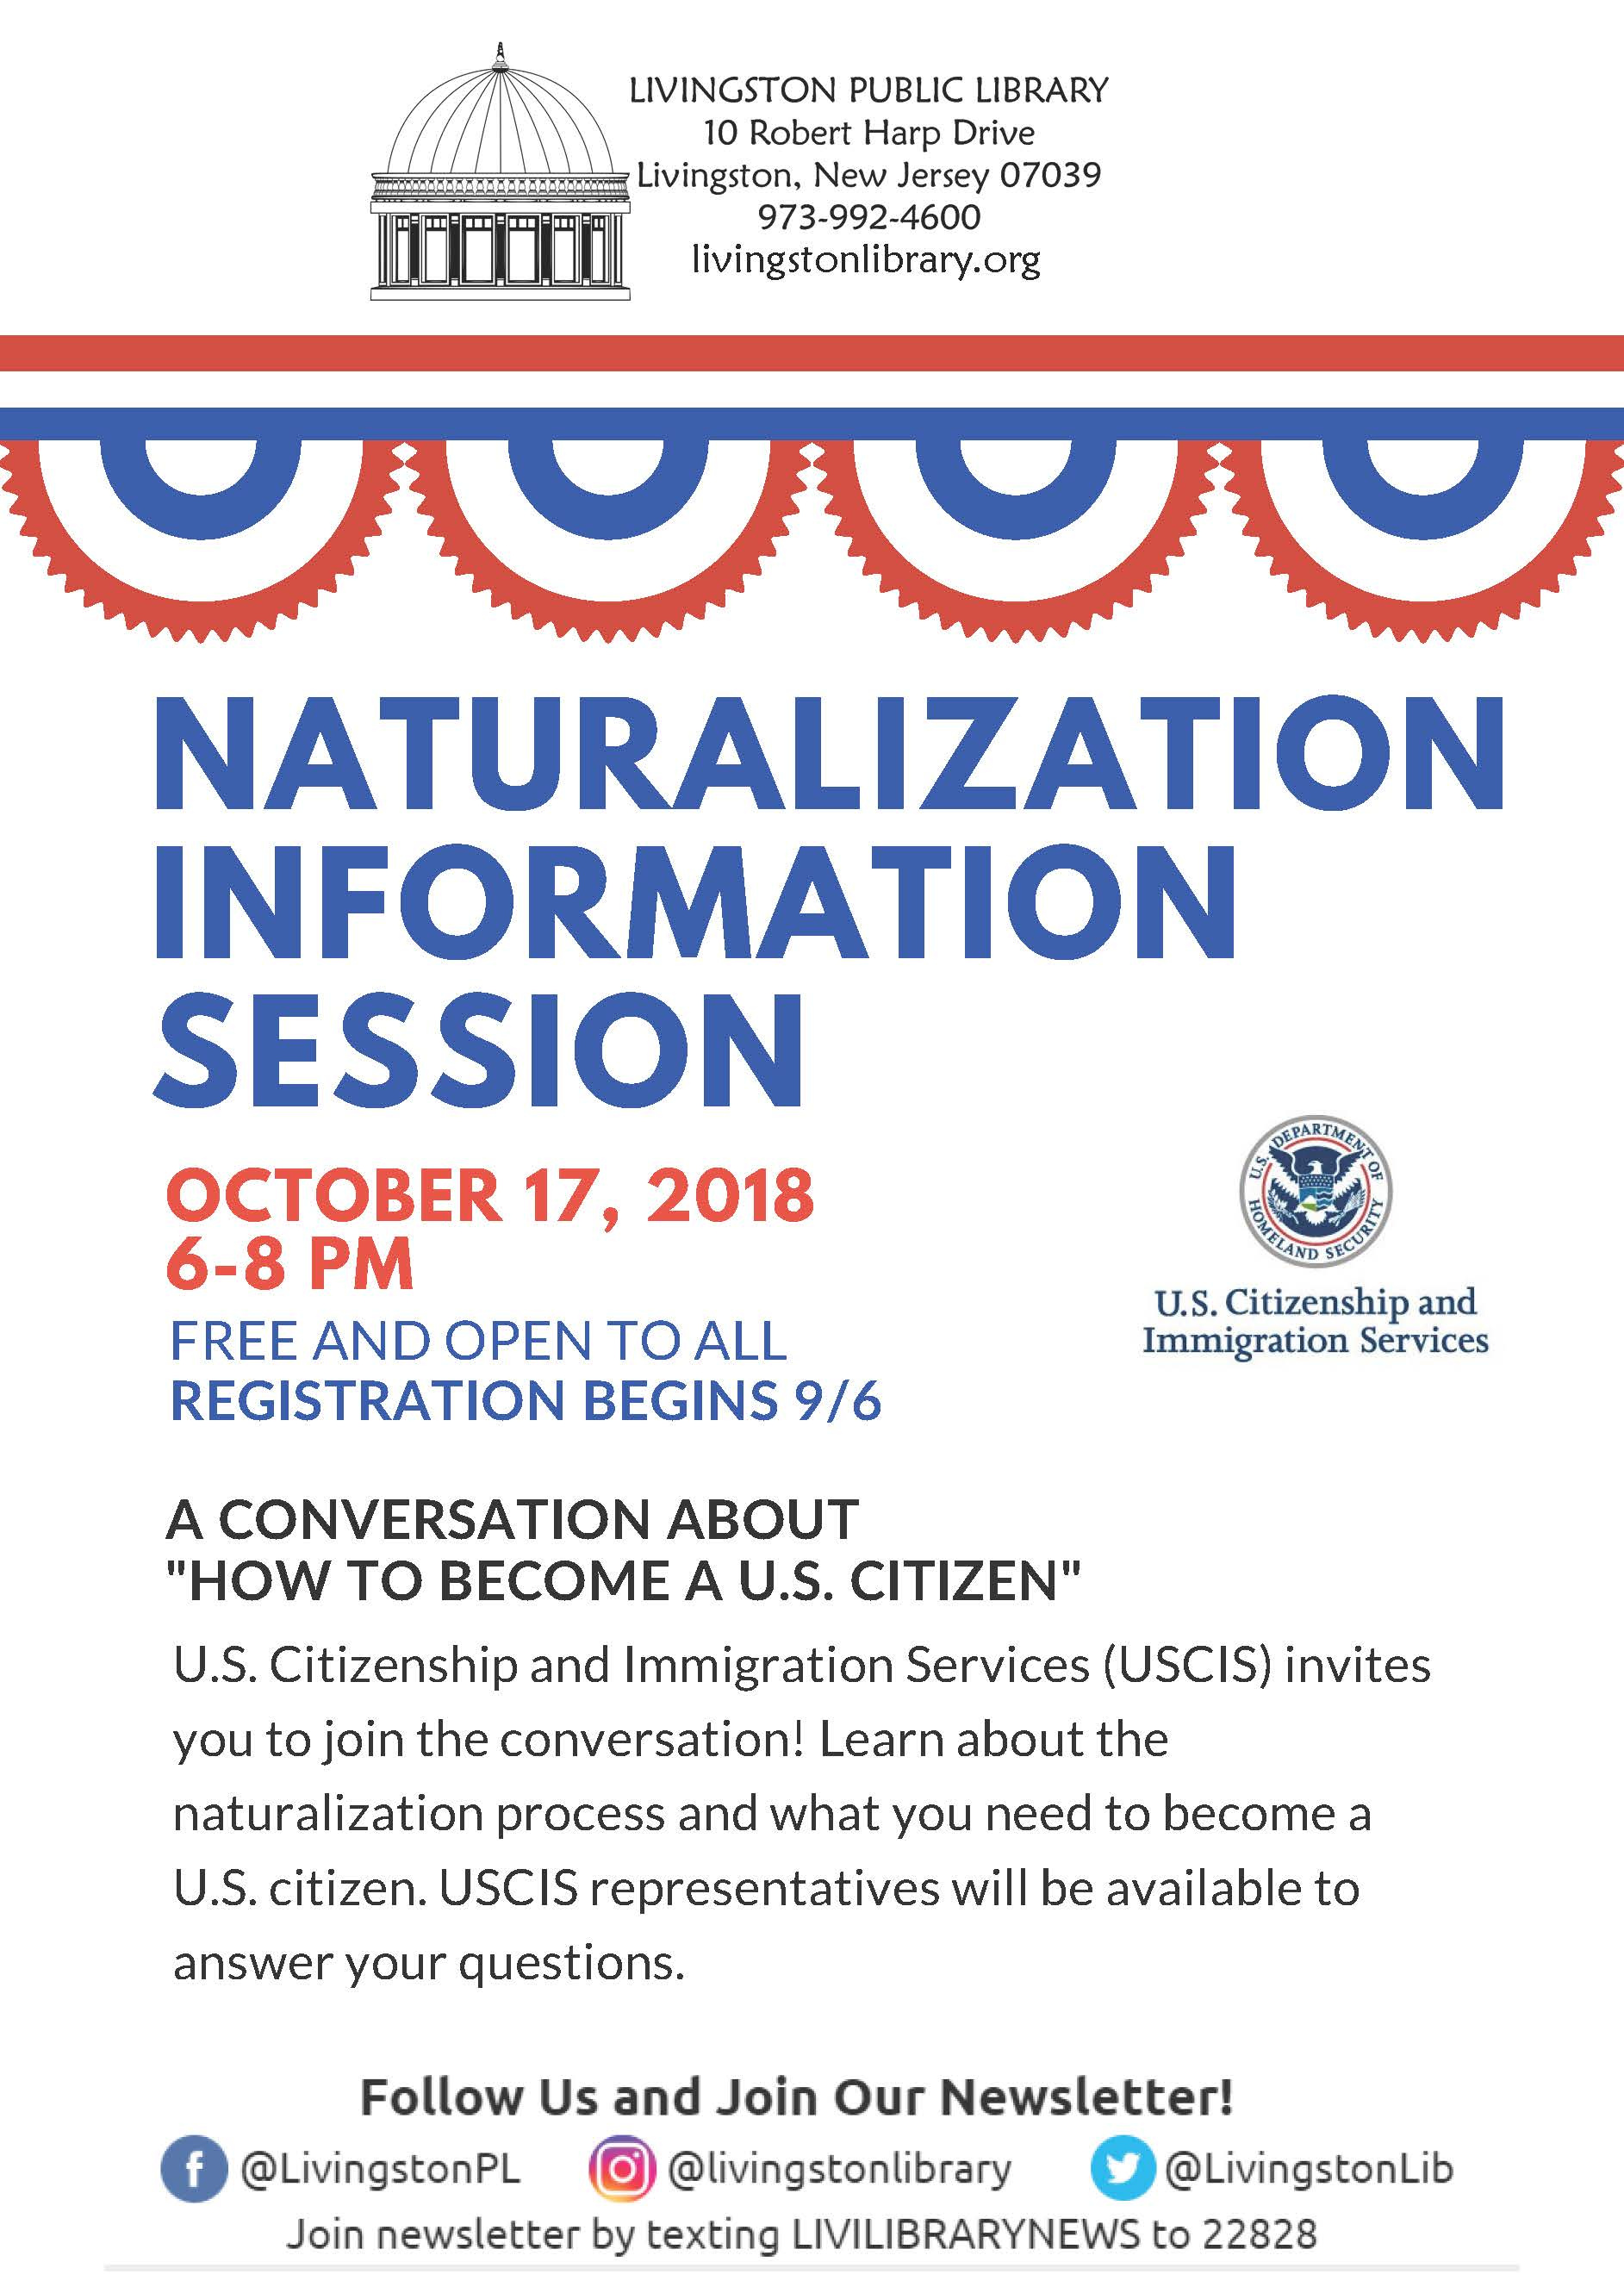 Flyer for the Naturalization Information Session on October 17, 2018 from 6 to 8 pm at the Livingsto